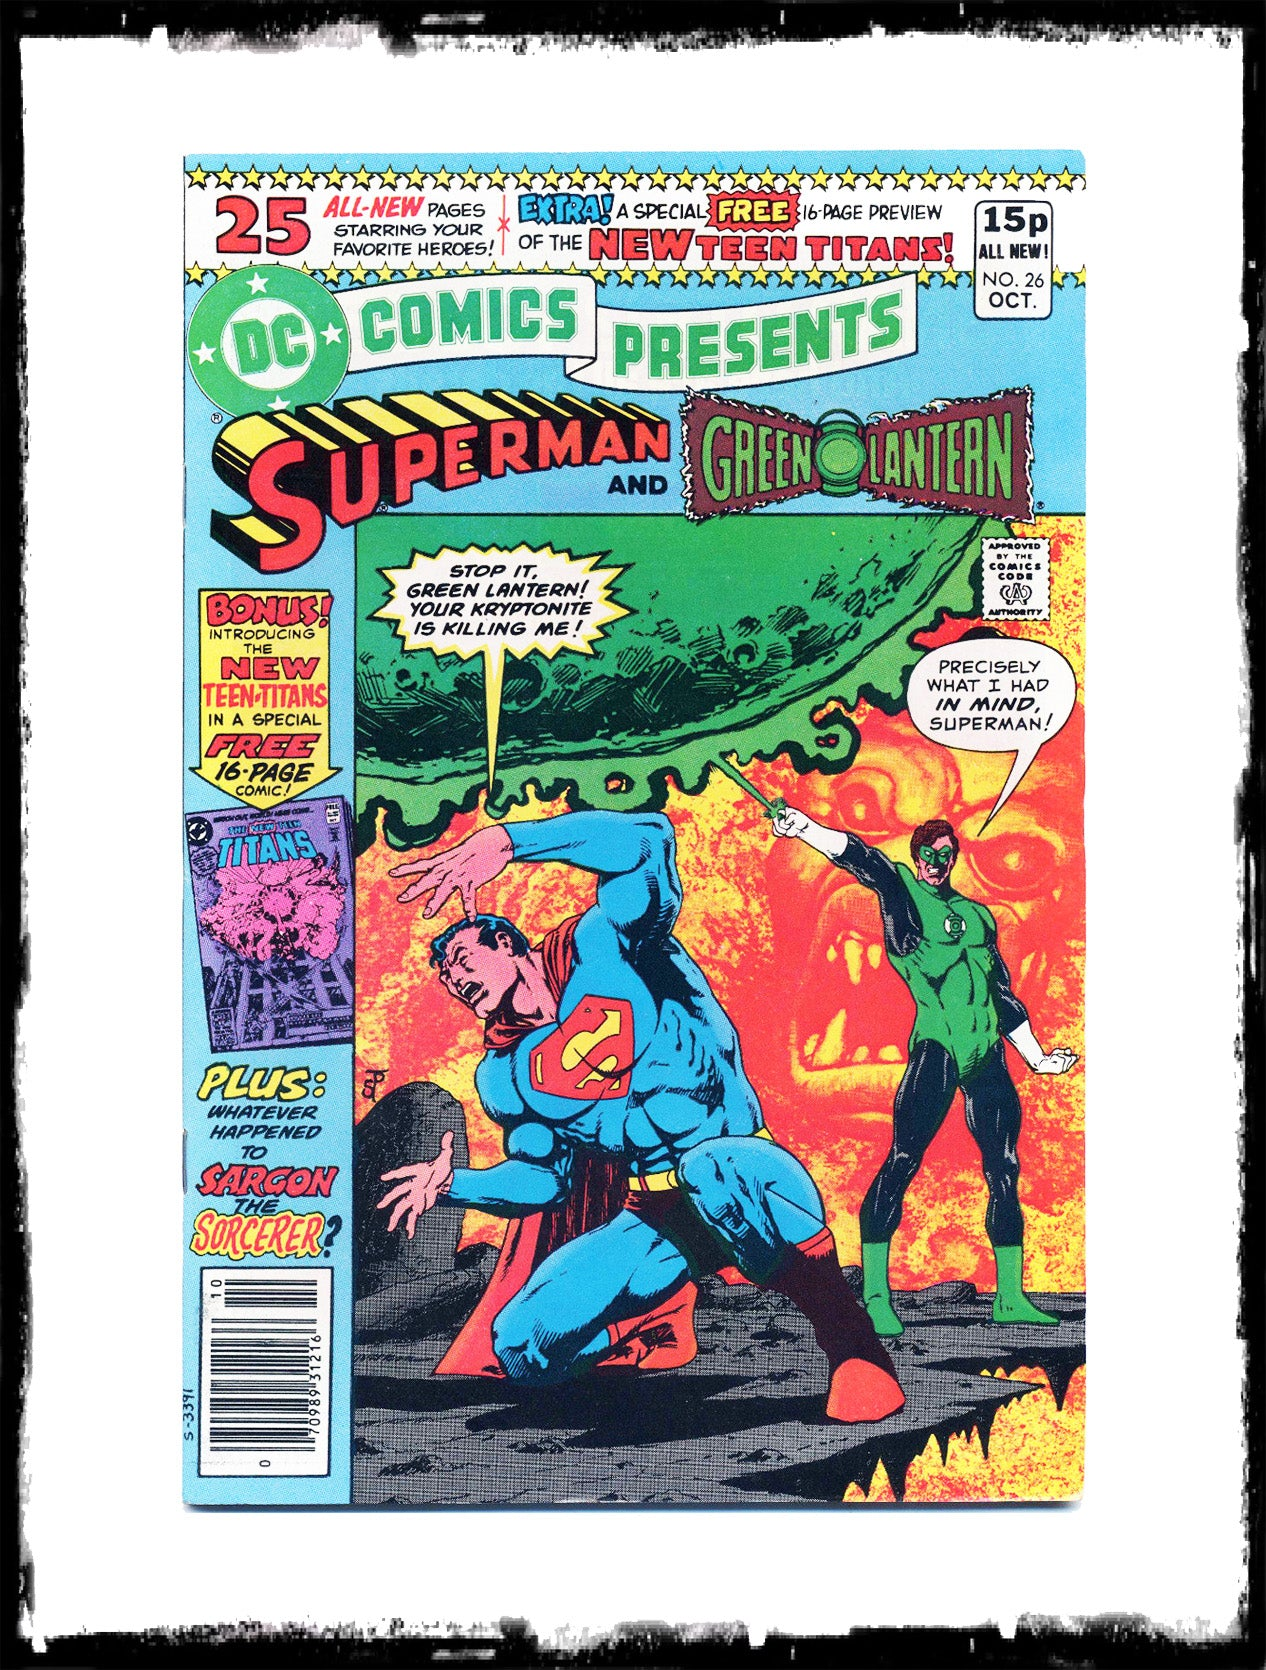 DC COMICS PRESENTS - #26 (1980 - VF)